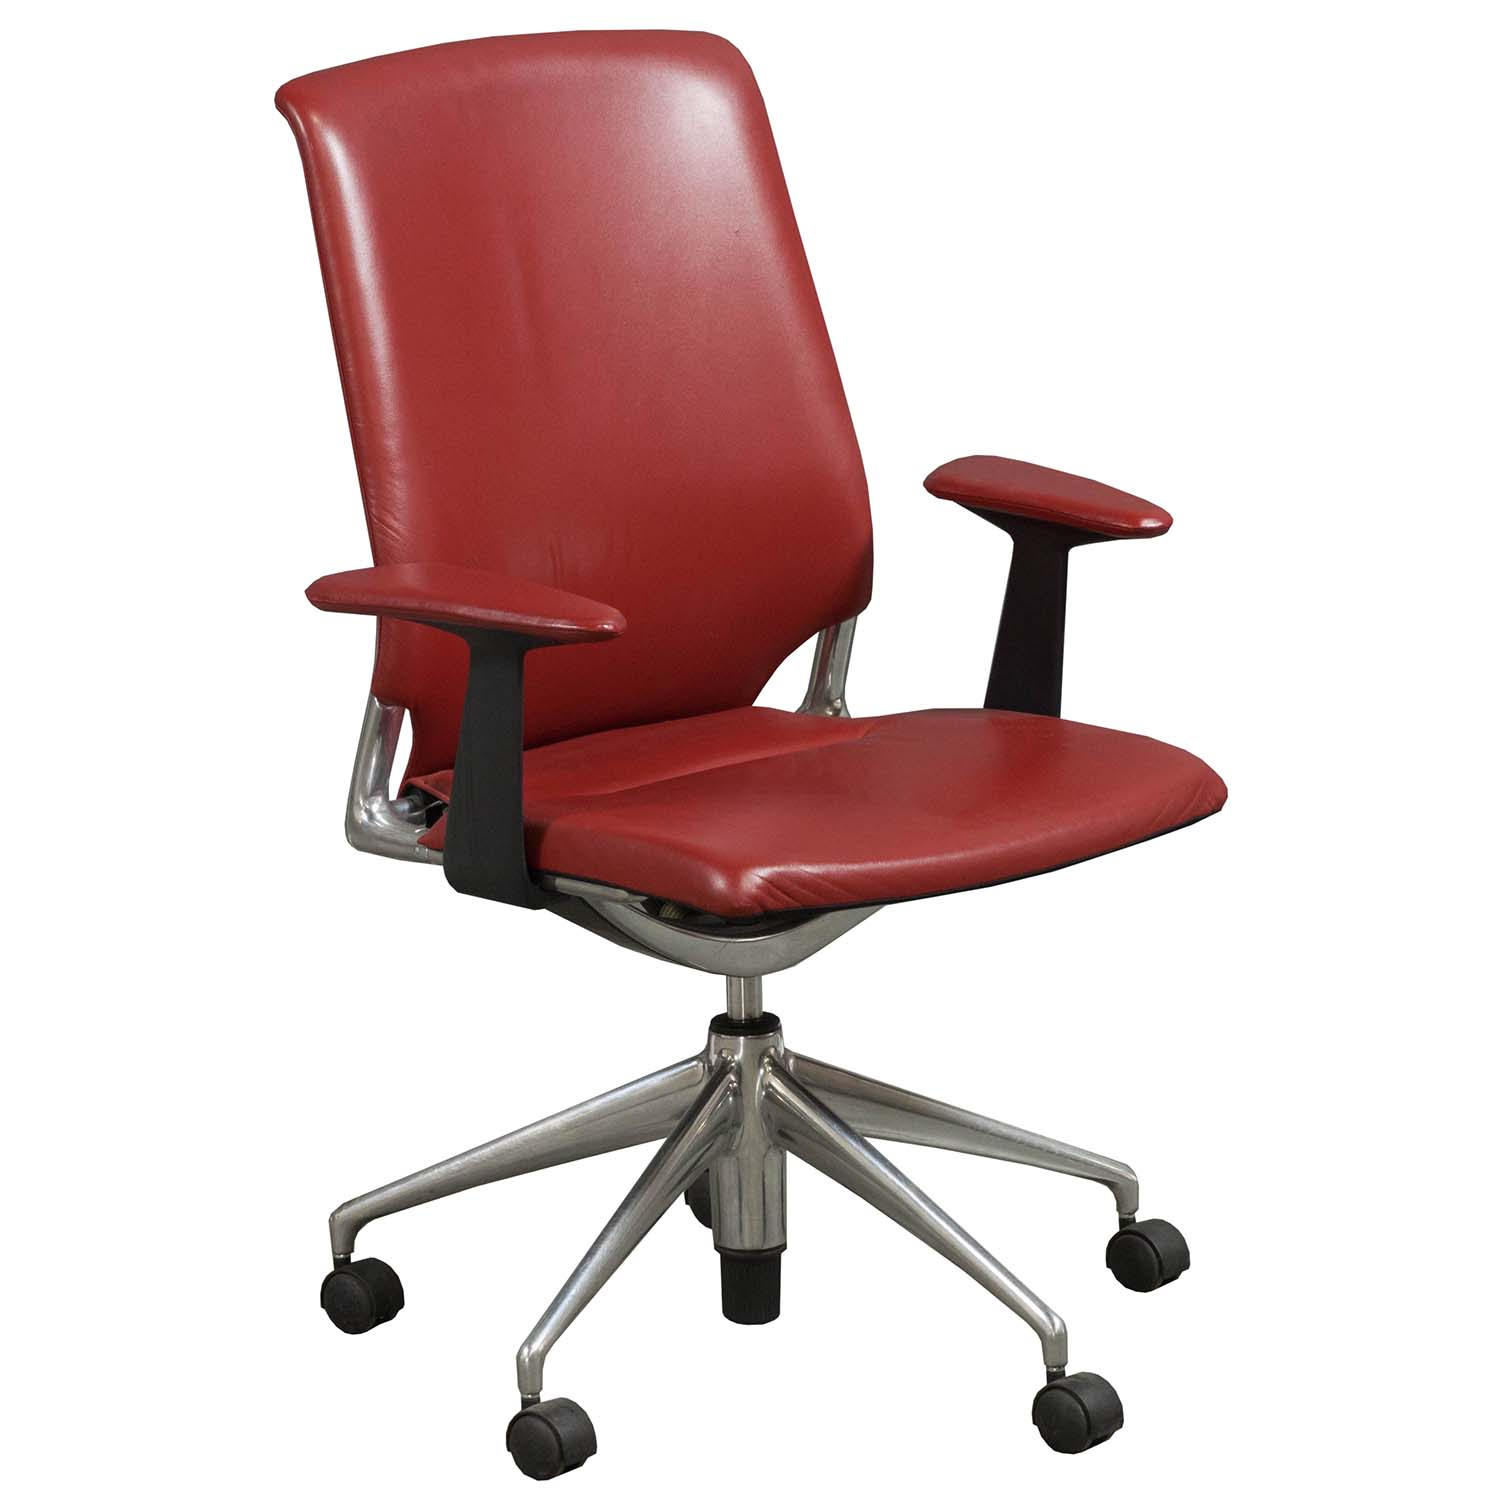 vitra office chair price marble patio table and chairs meda used leather conference red national